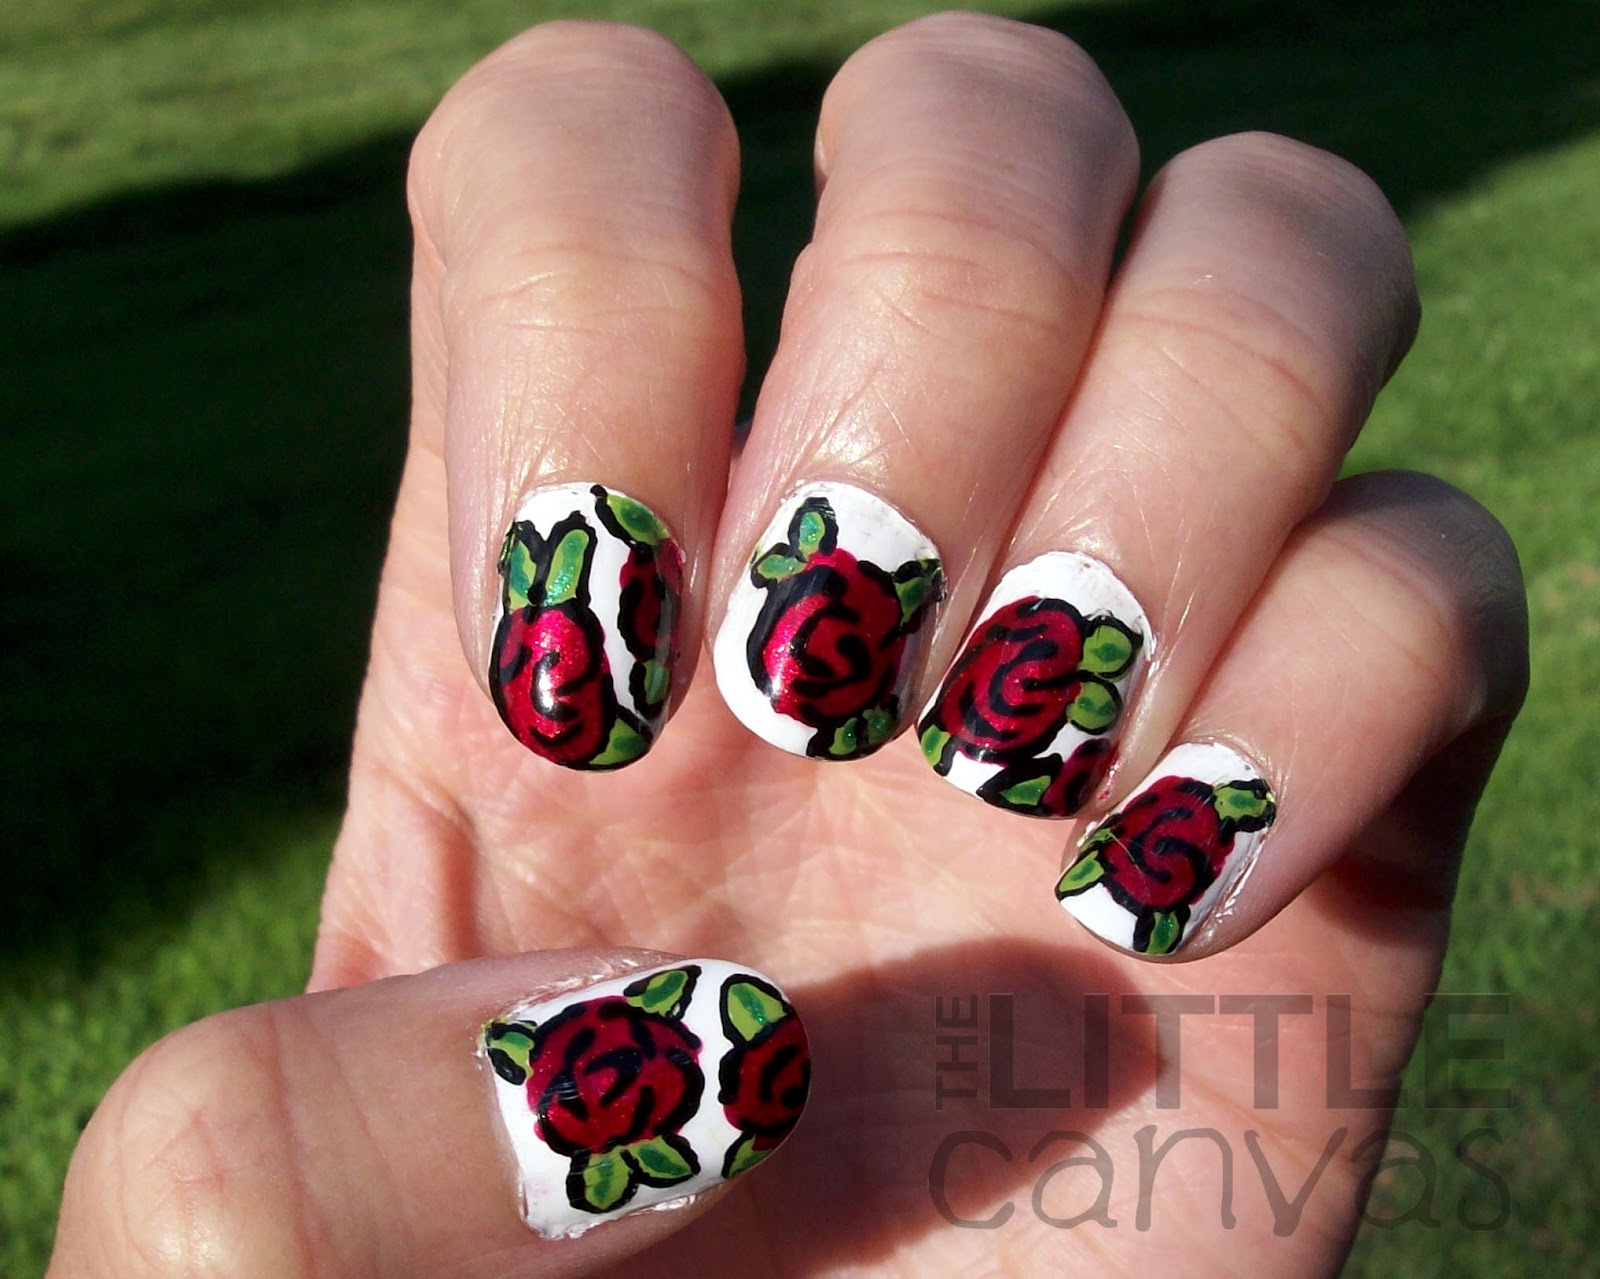 Red Roses Nail Art Tutorial - The Little Canvas